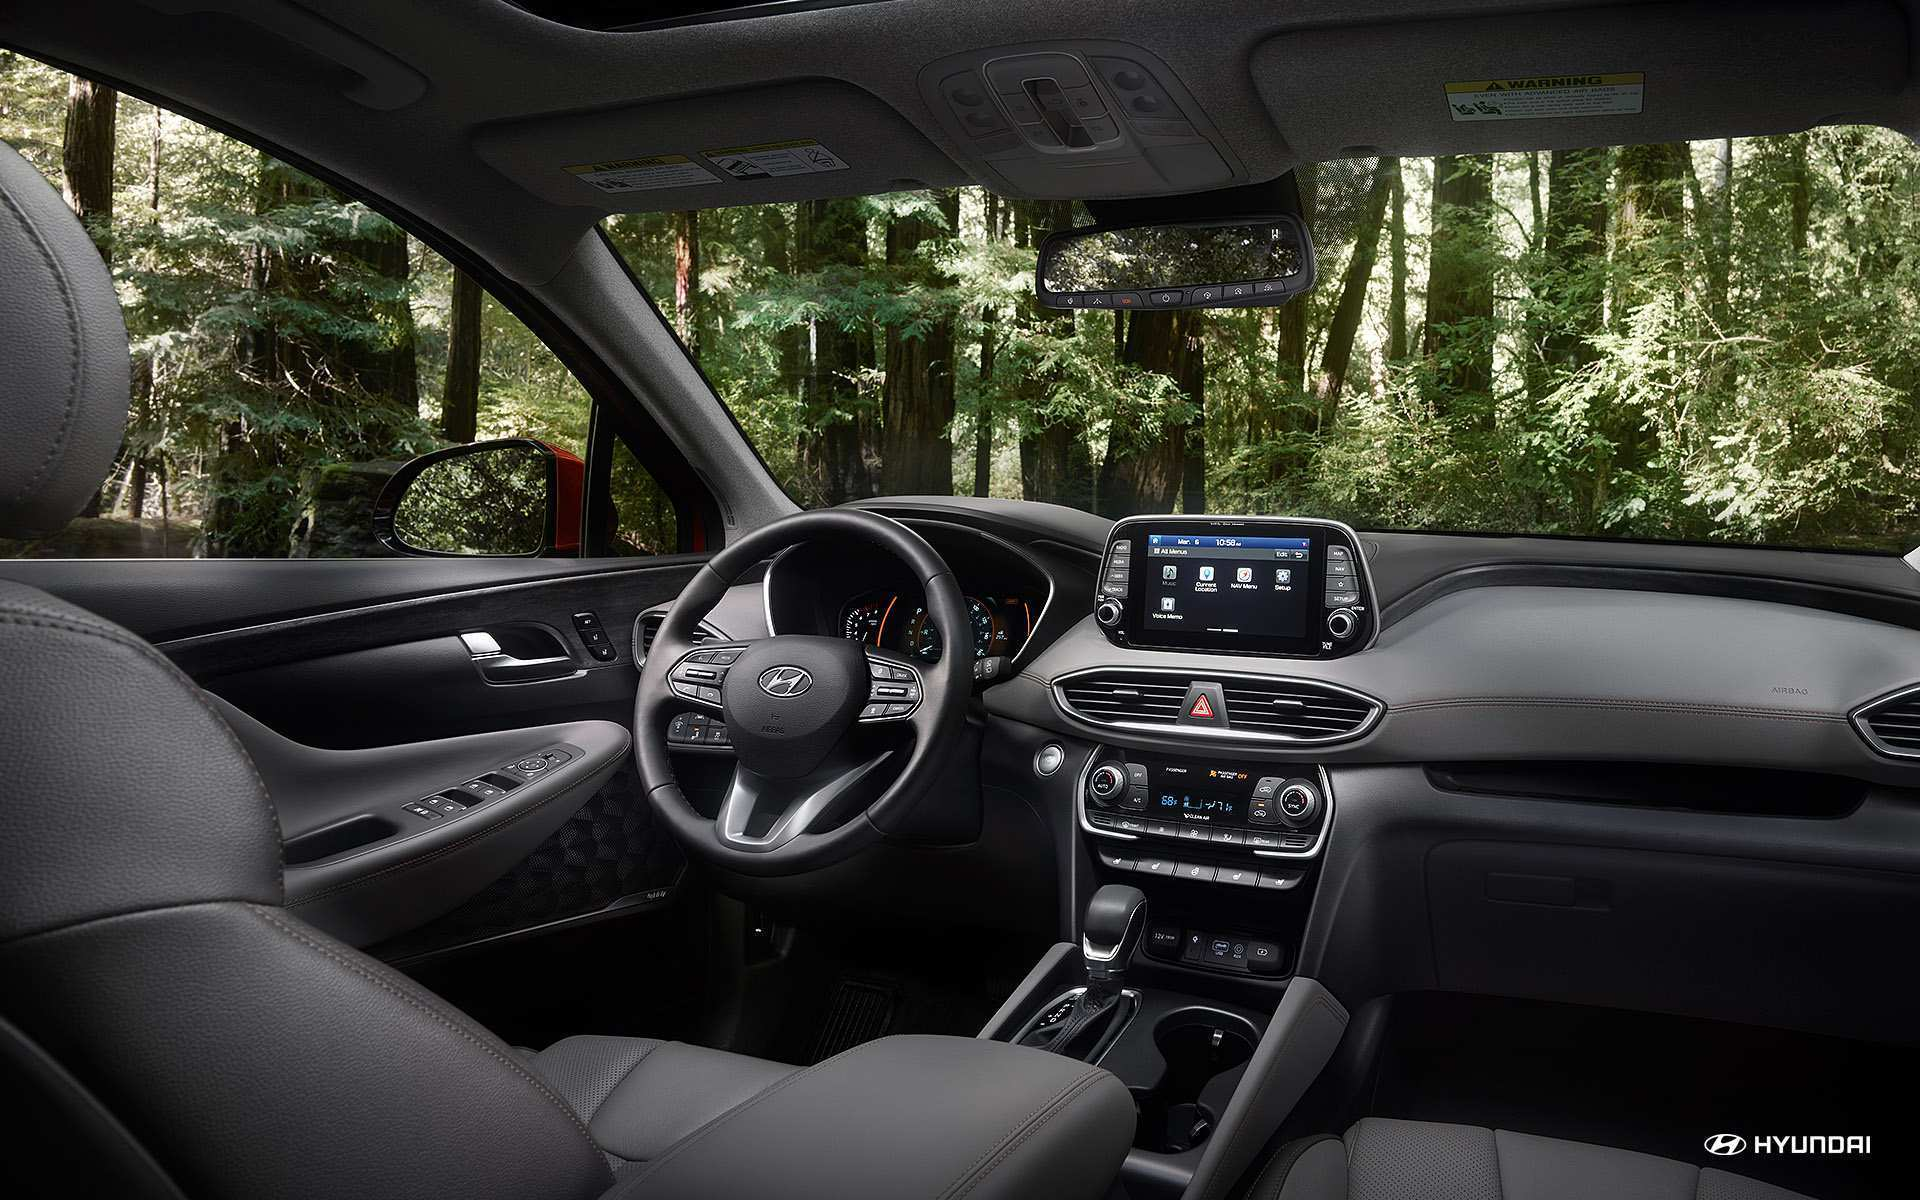 37 New 2019 Hyundai Santa Fe Interior Prices